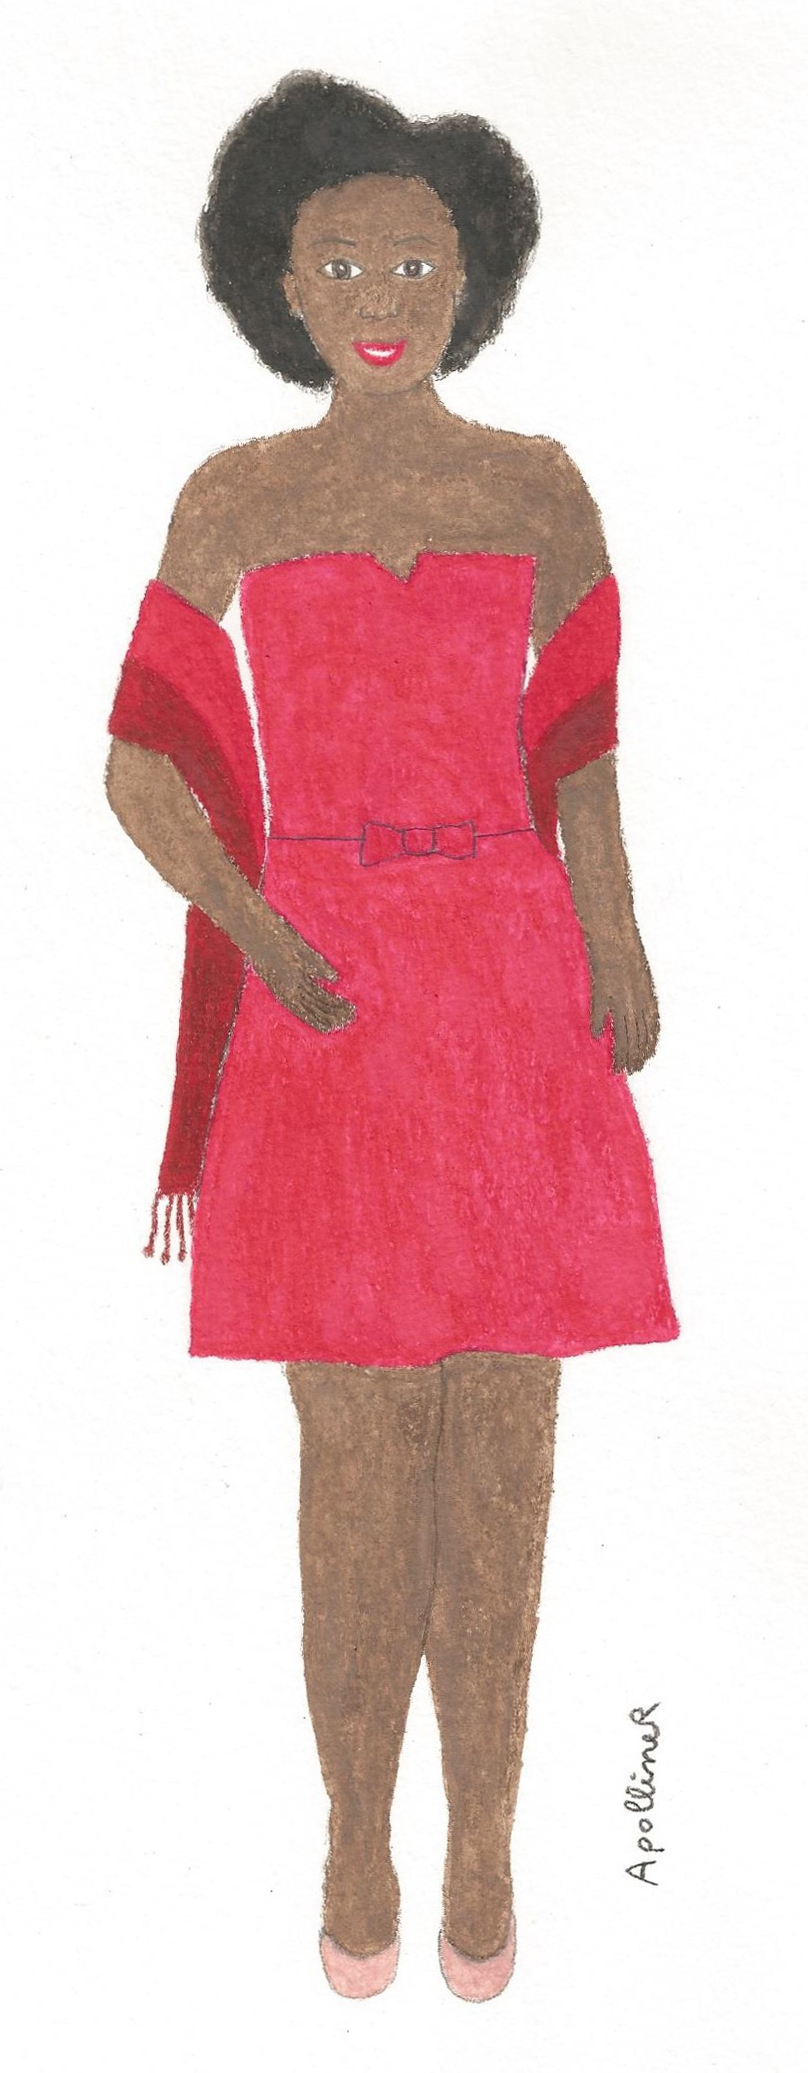 drawing of a woman wearing a	raspberry pink strapless dress with a ethical two-tone stole